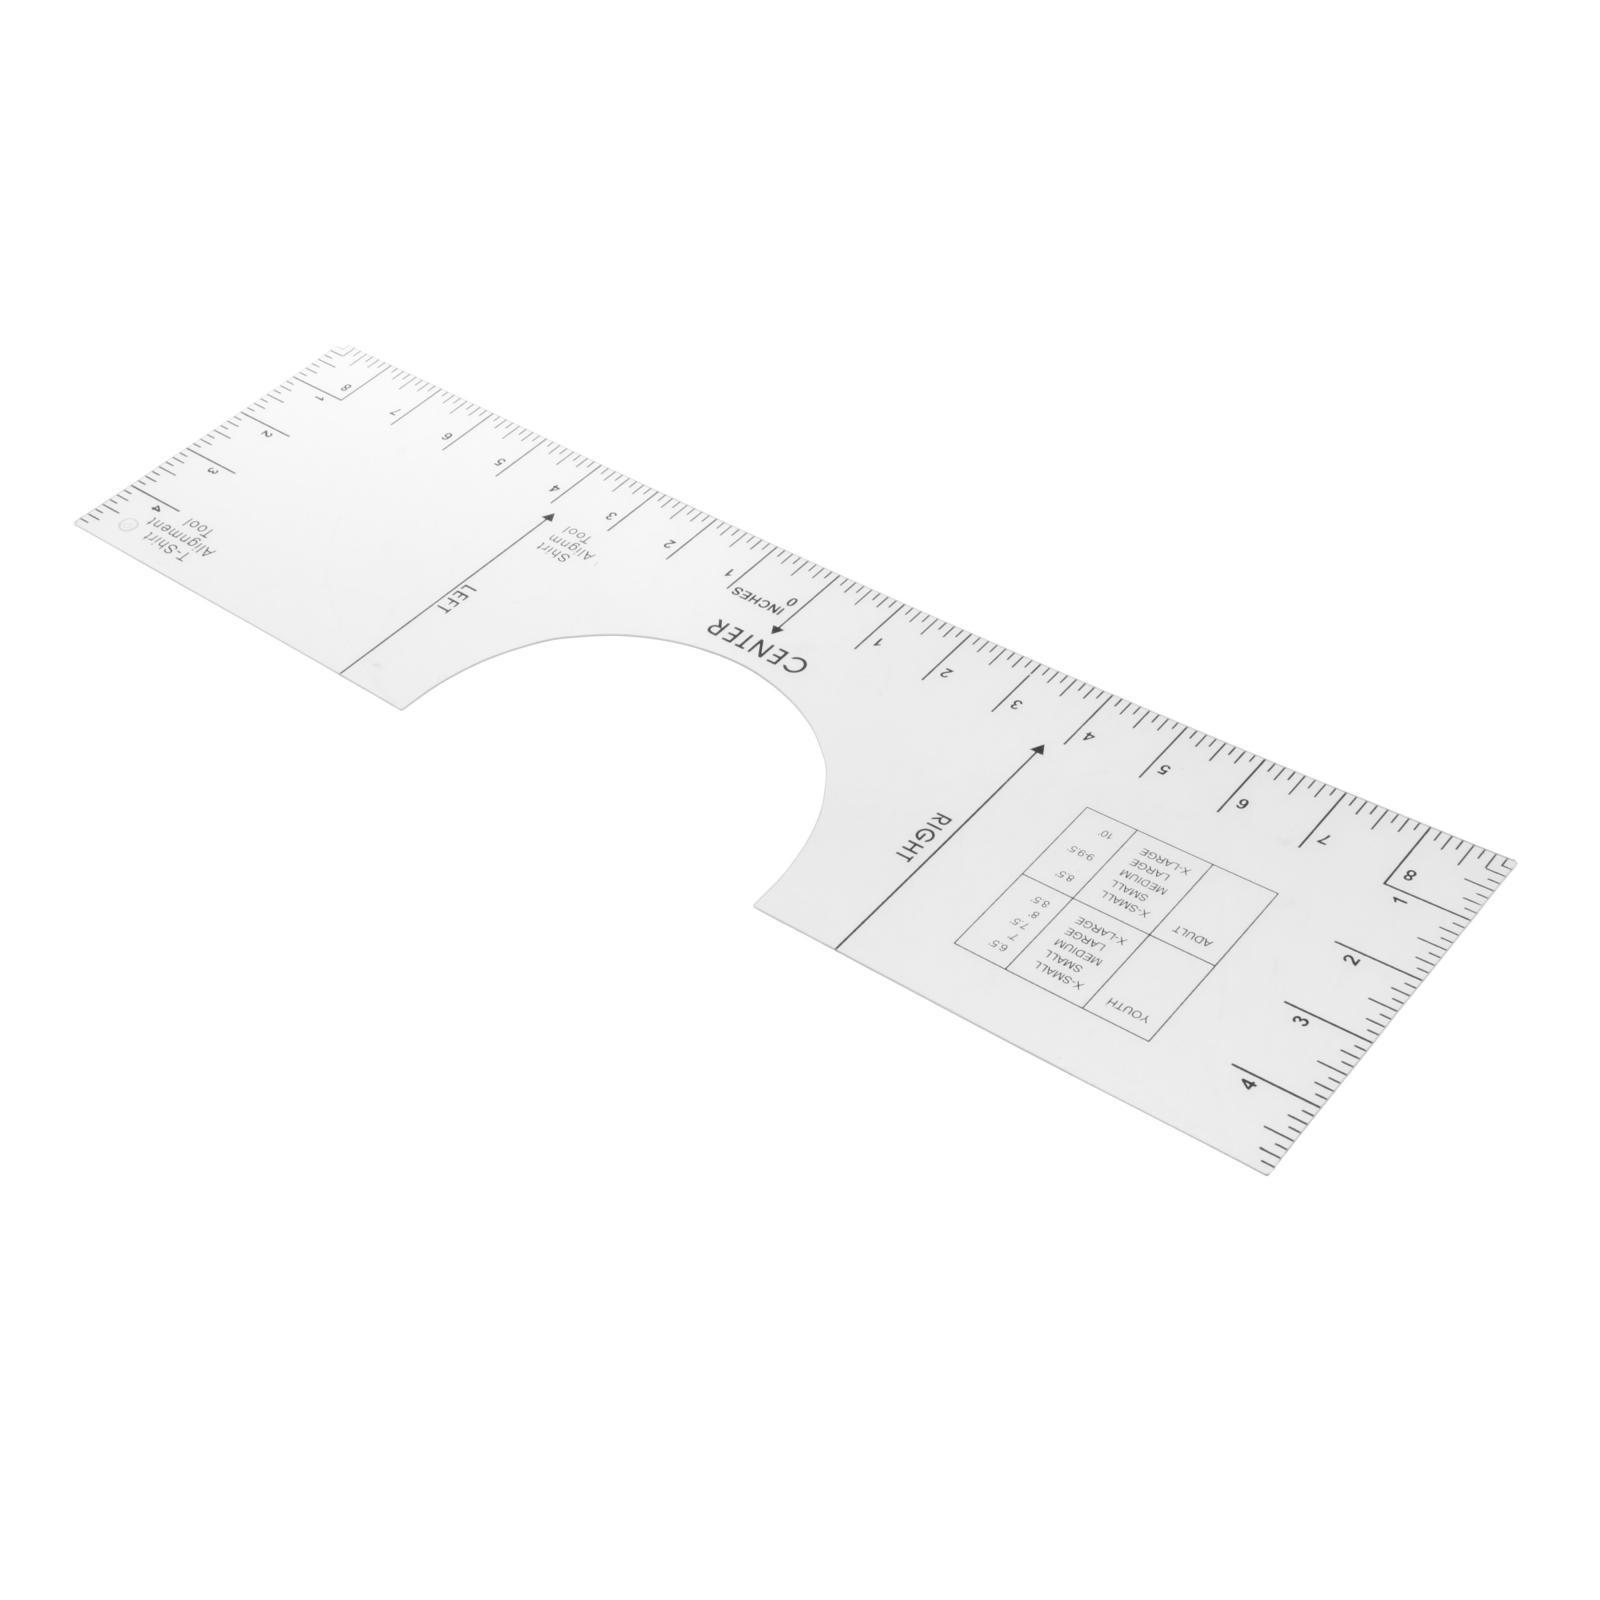 10x5 6 T Shirt Ruler Guide Alignment Tool For Vinyl Placement Sublimation Ebay